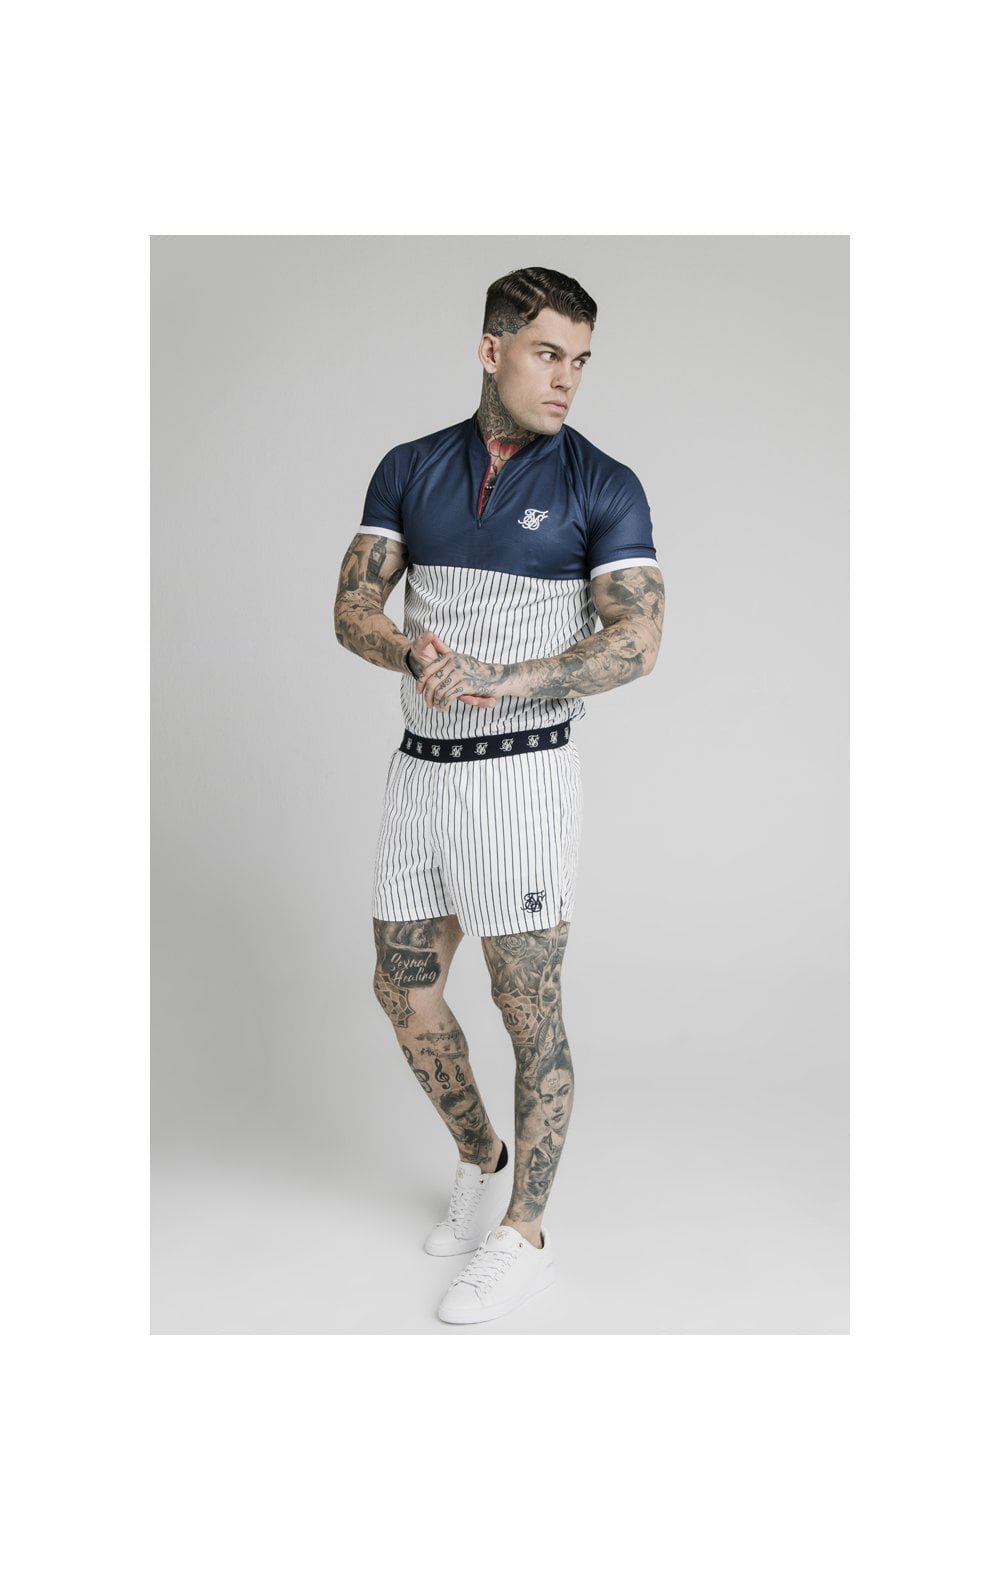 SikSilk Eyelet Elasticated Swim Shorts - White & Navy (5)